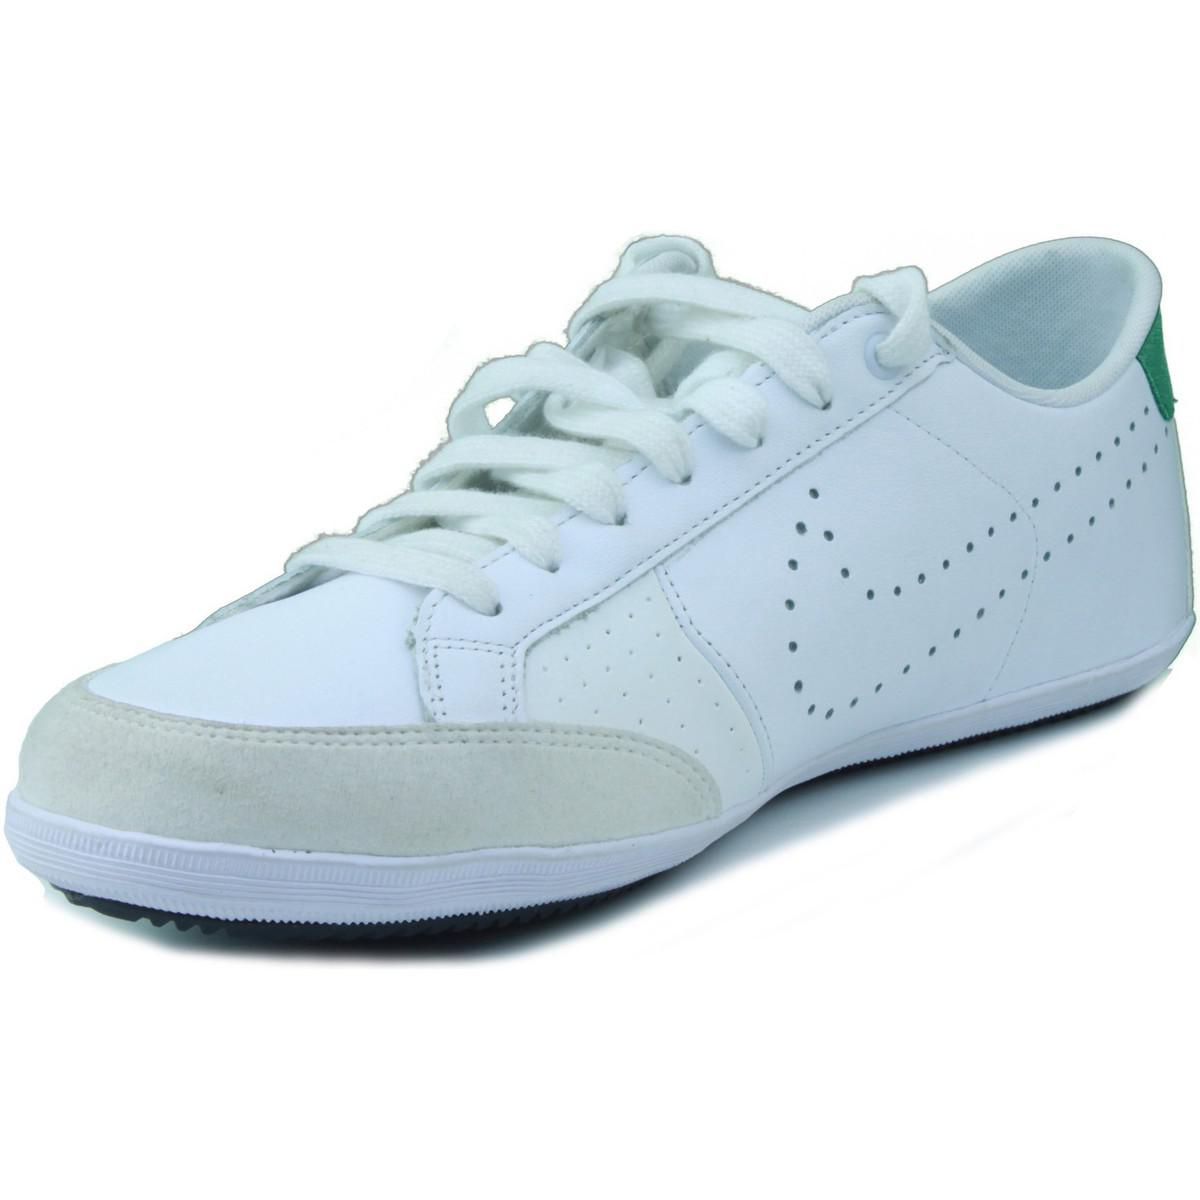 low priced a12d5 56784 Nike Flyclave Ltr Mens Shoes (trainers) In White in White fo